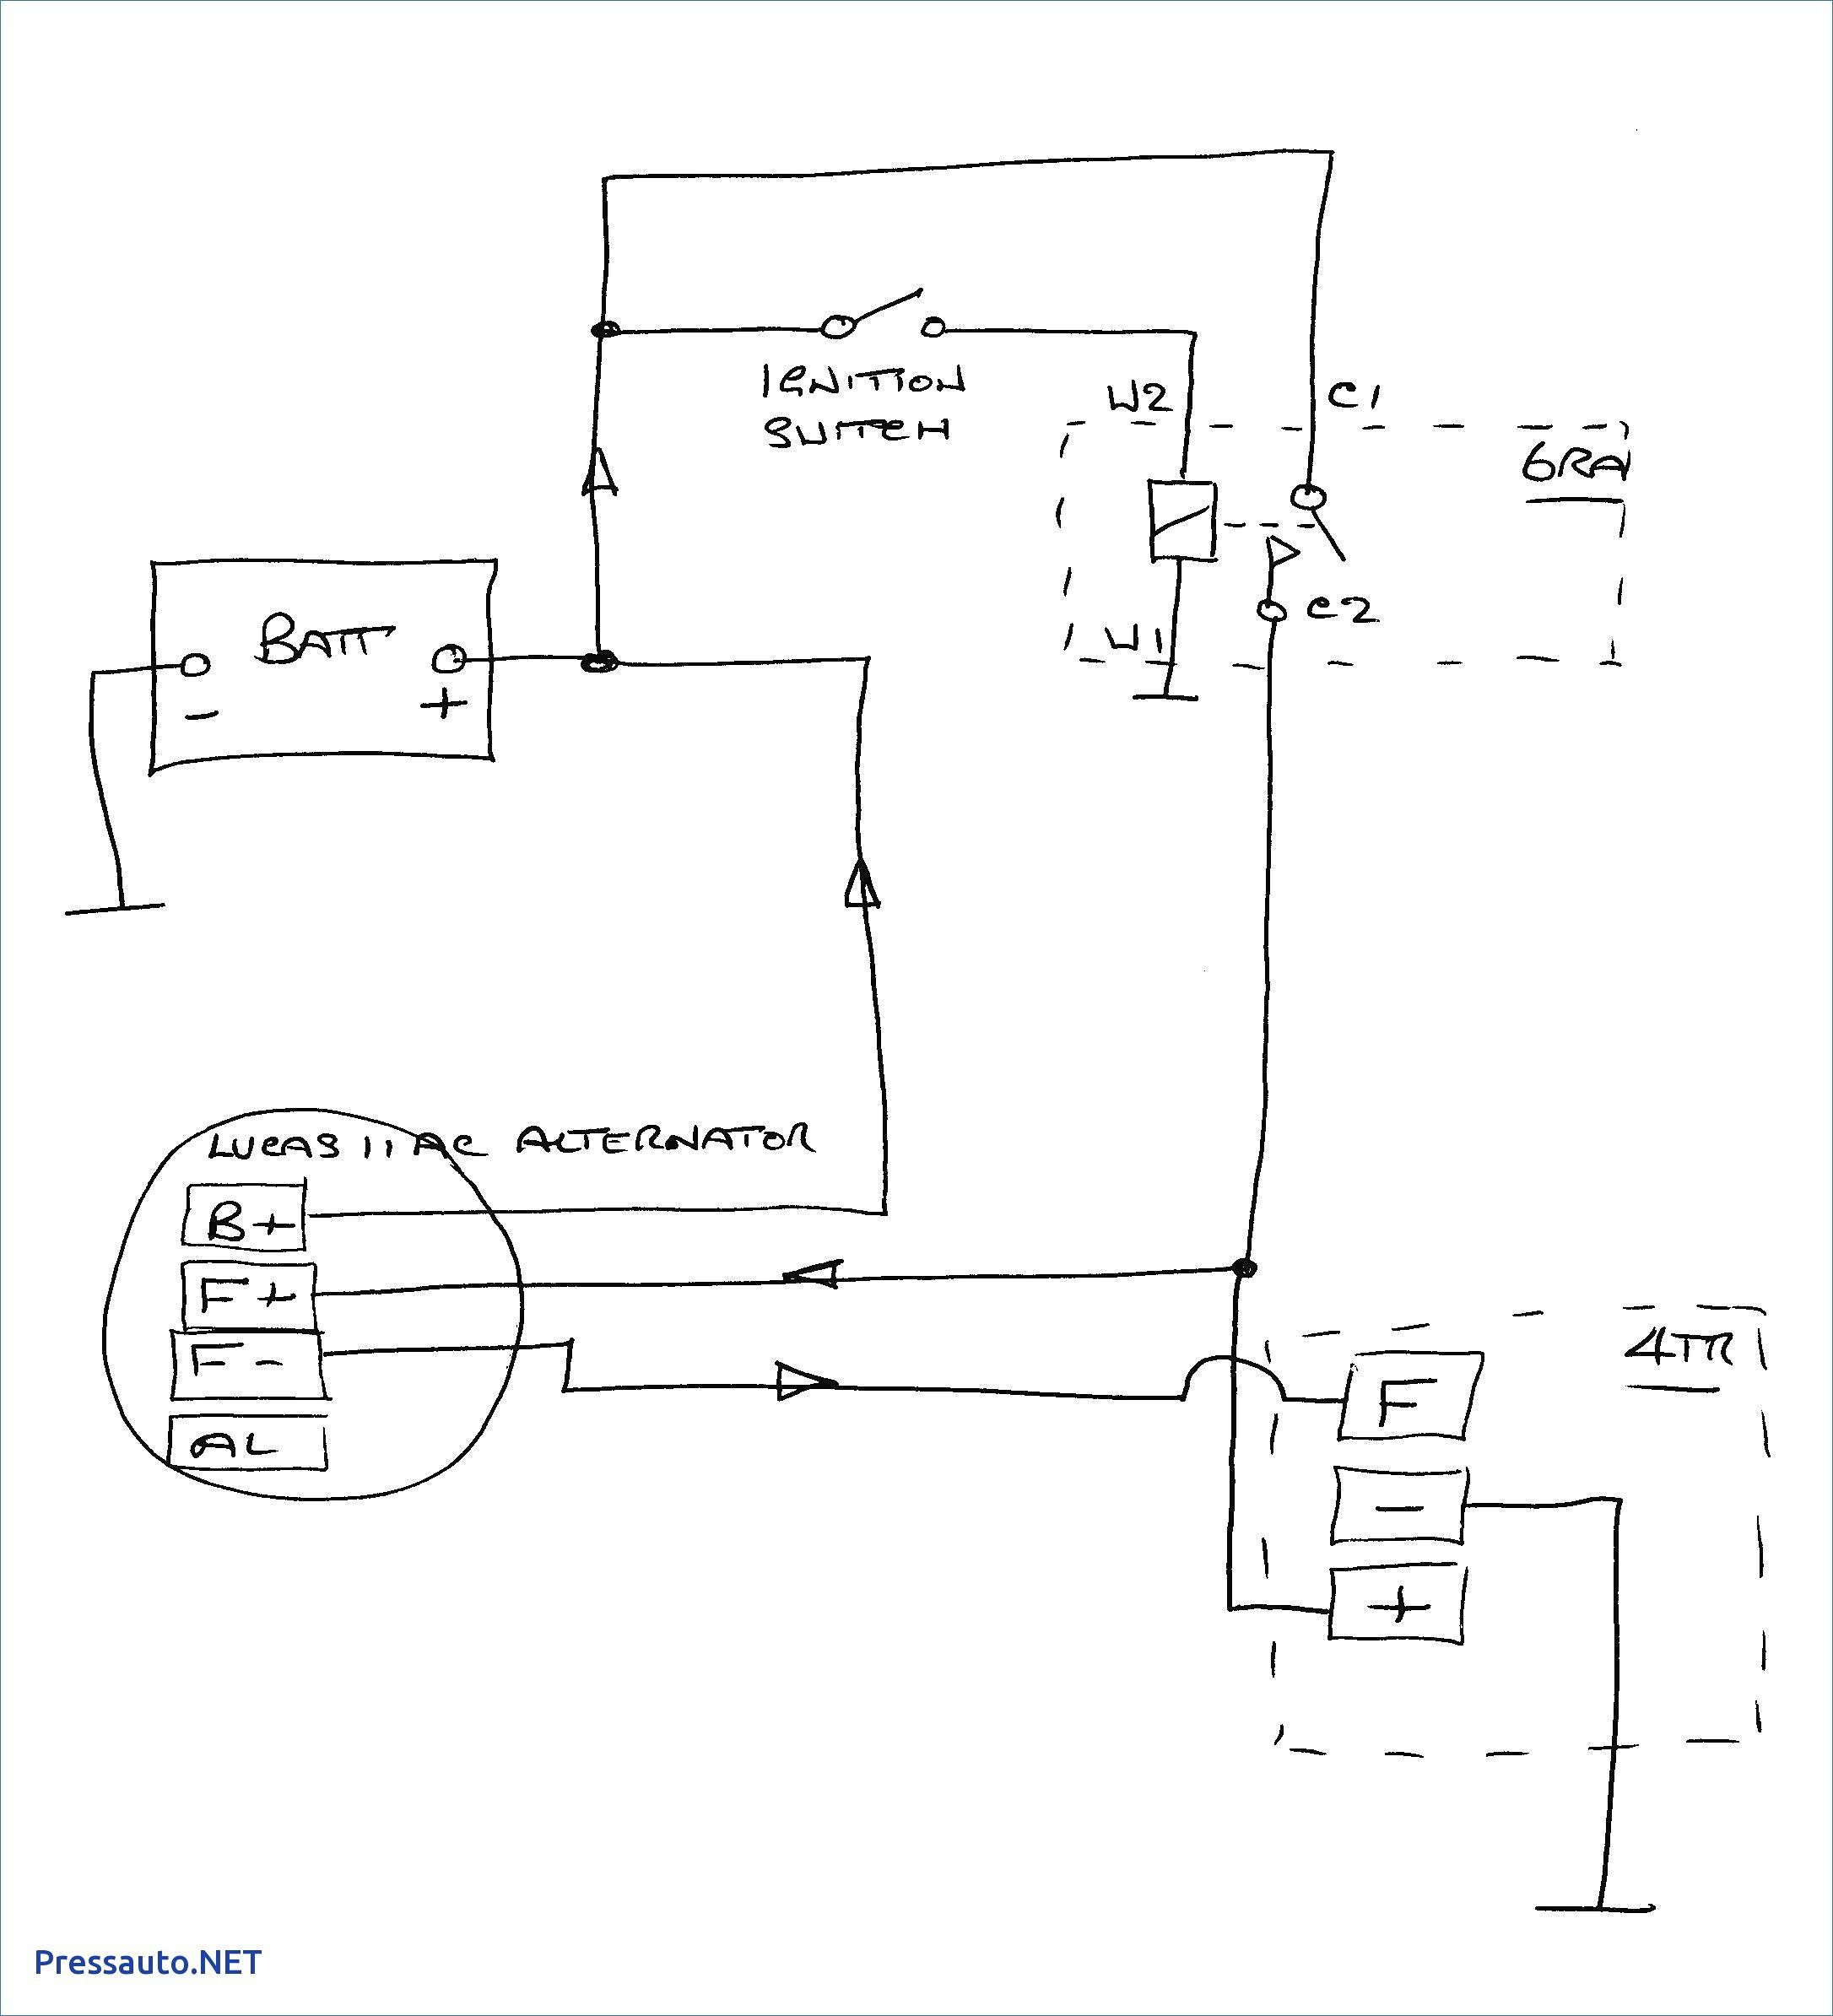 12 Volt Alternator Wiring Diagram | Wiring Diagram